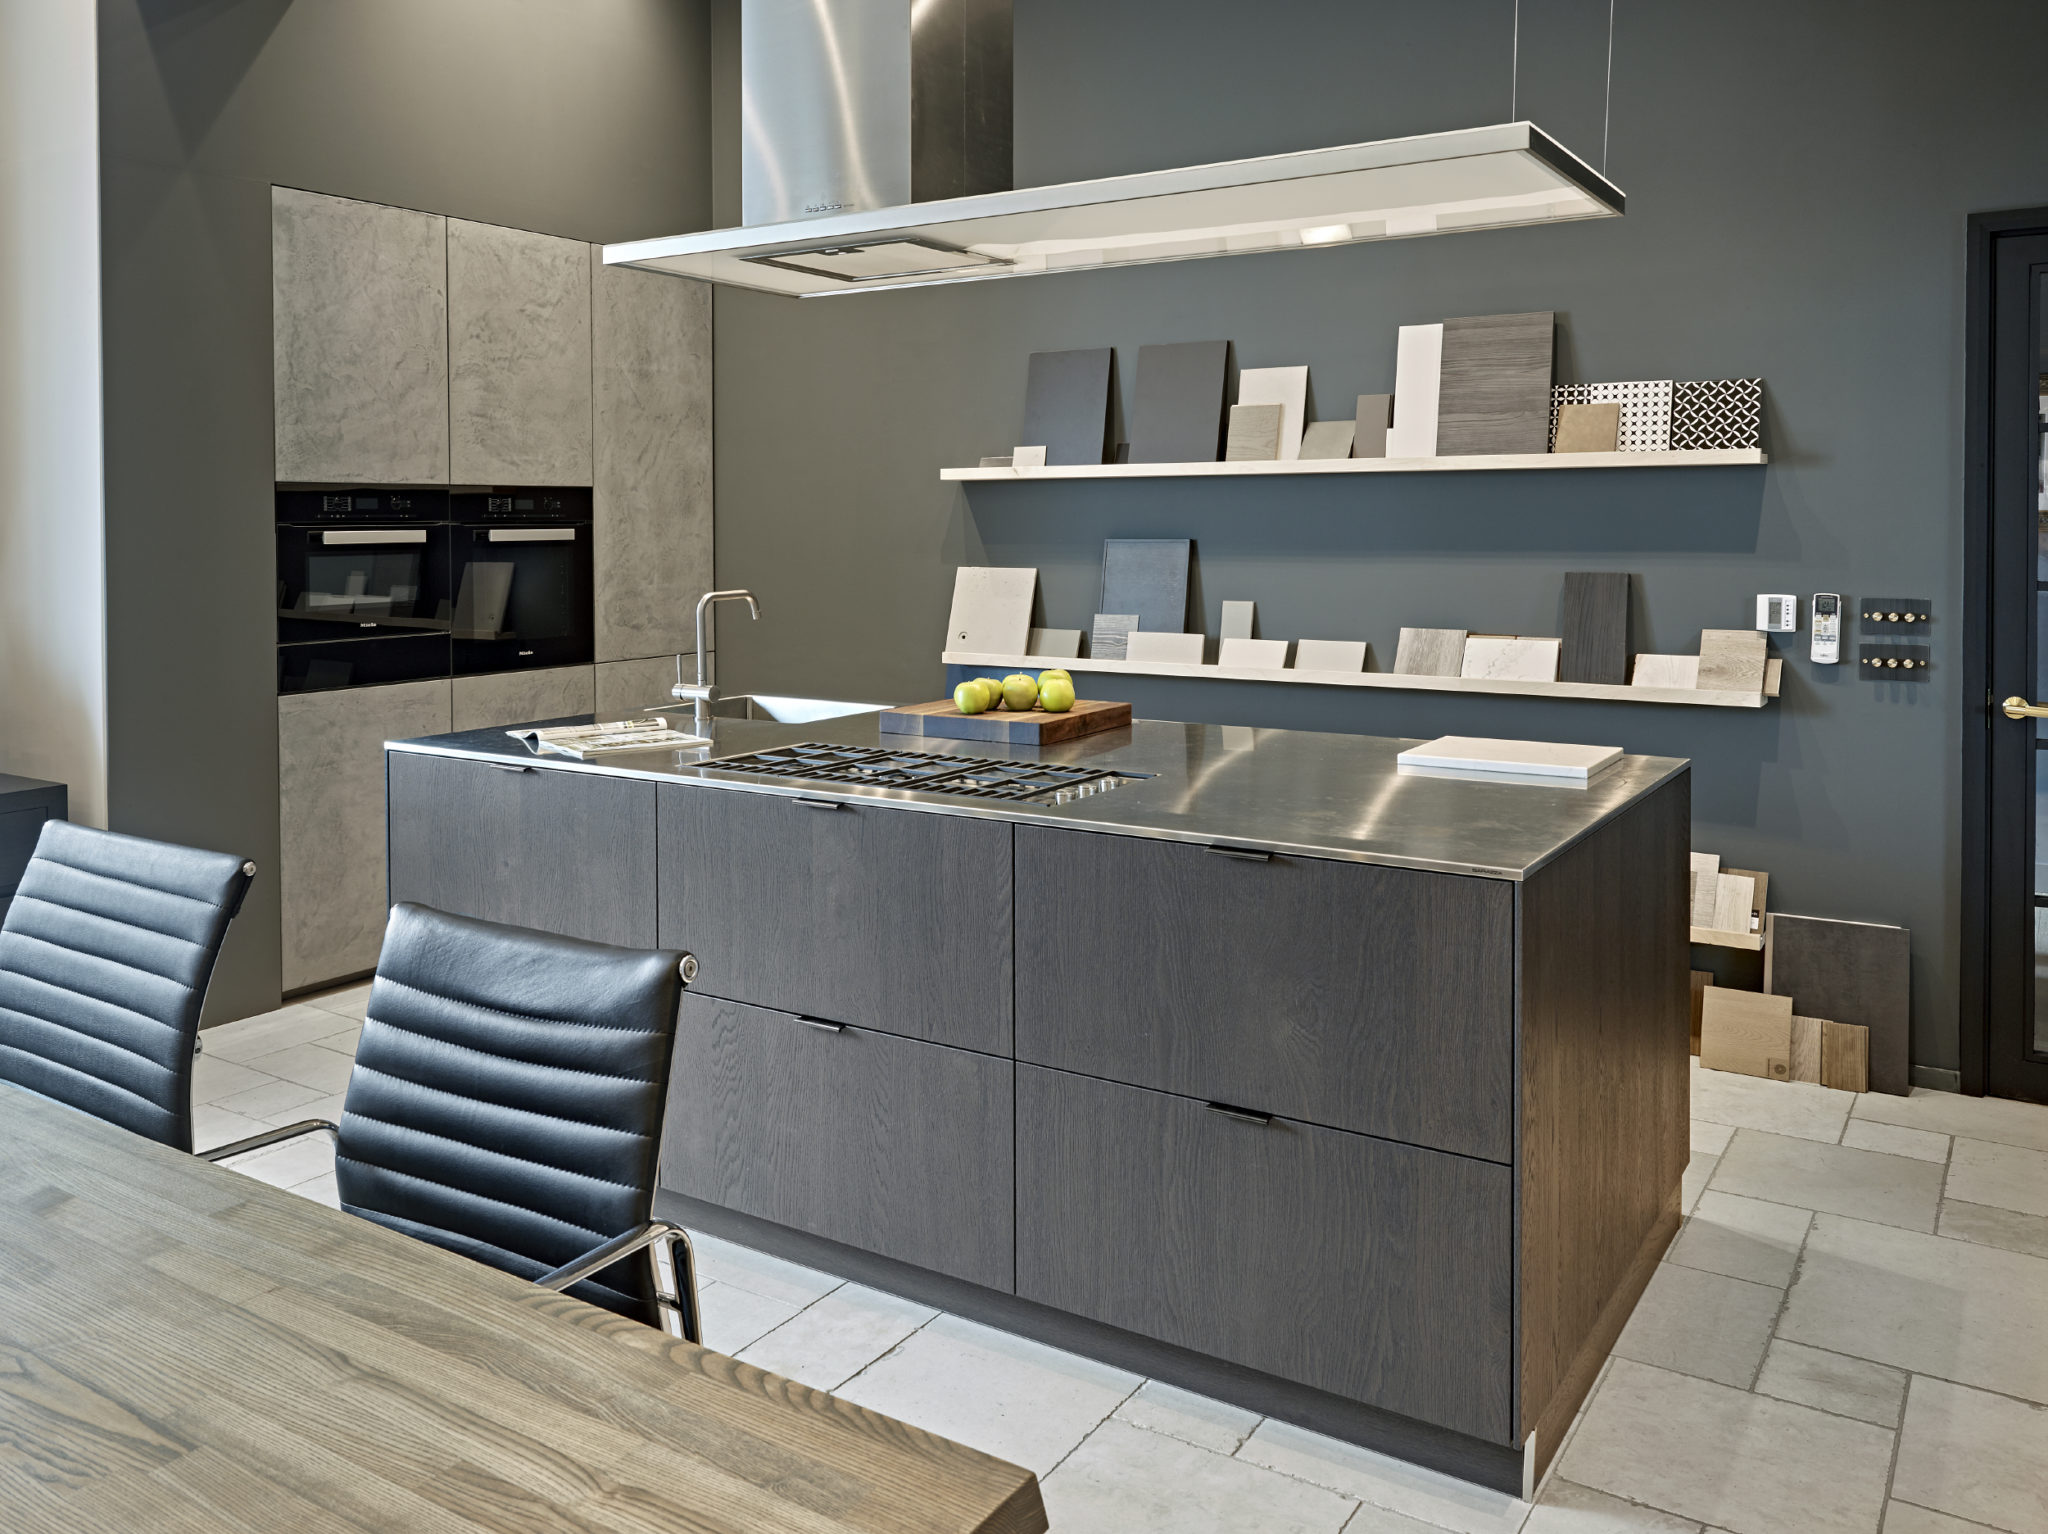 Display Kitchen at The Brayer Design Studio - Design office/showroom in Surbiton, Surrey